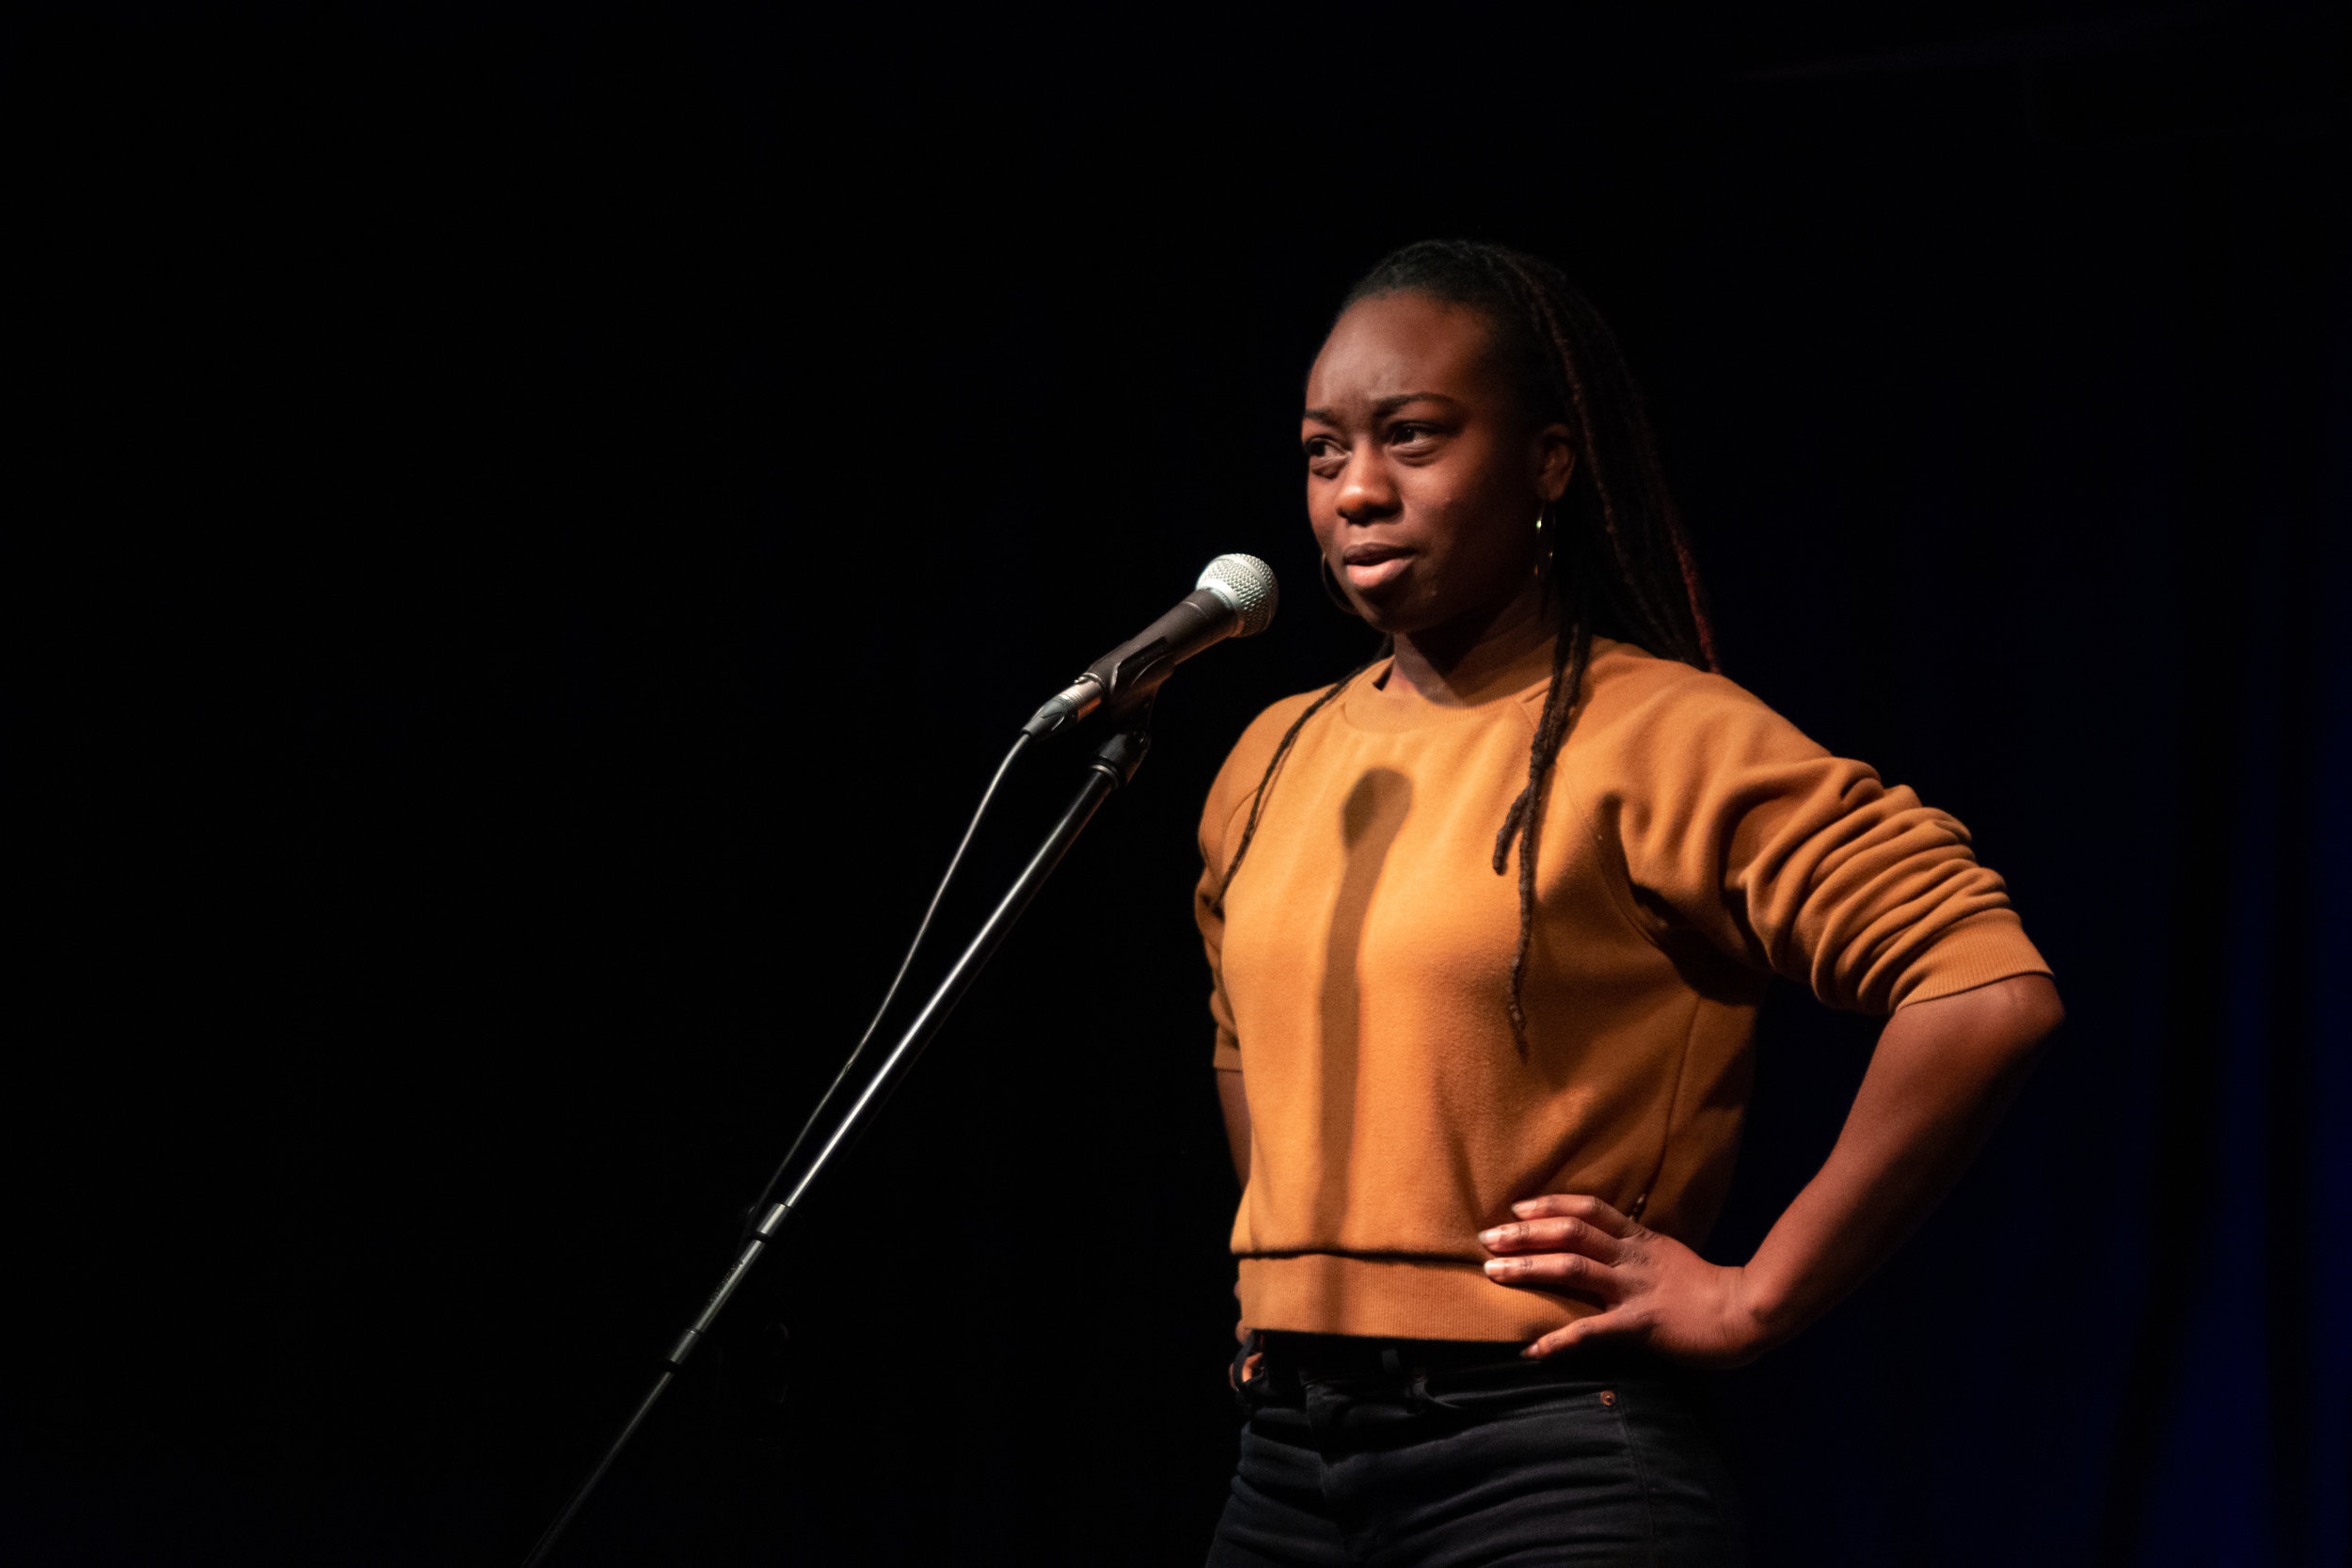 Eugenia Duodu shares her story at the Burdock Music Hall in Toronto, ON in January 2019. Photo by Stacey McDonald.